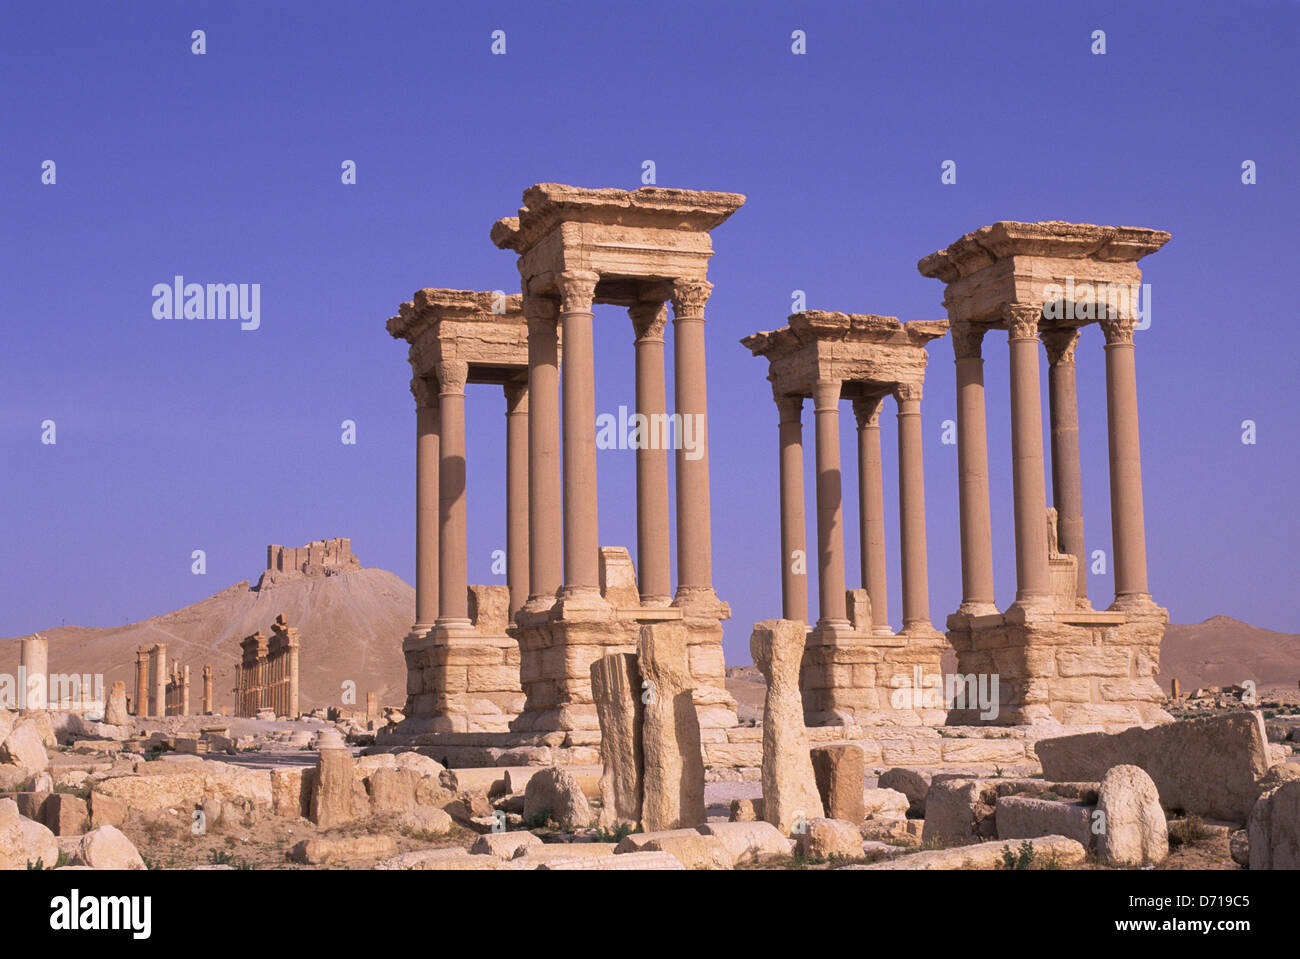 Syria, Palmyra, Ancient Roman City, Tetrapylon And Castle Of Fakhr Ud-Din - Stock Image